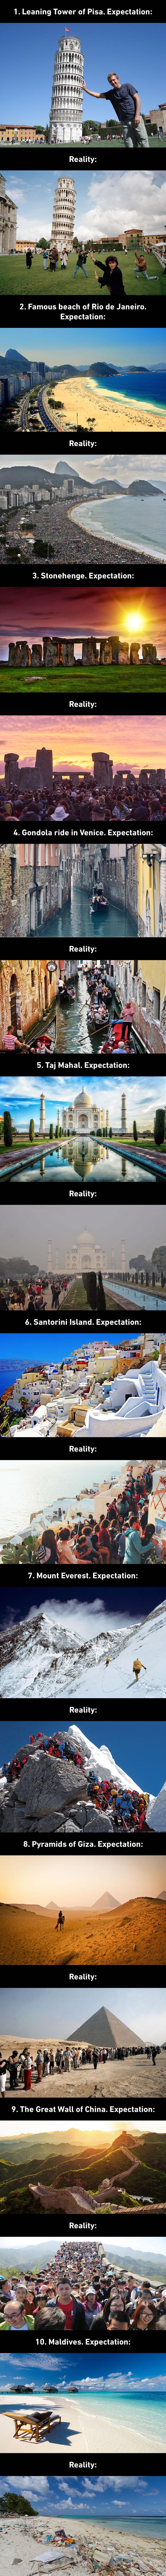 expectation versus reality in travelling the world